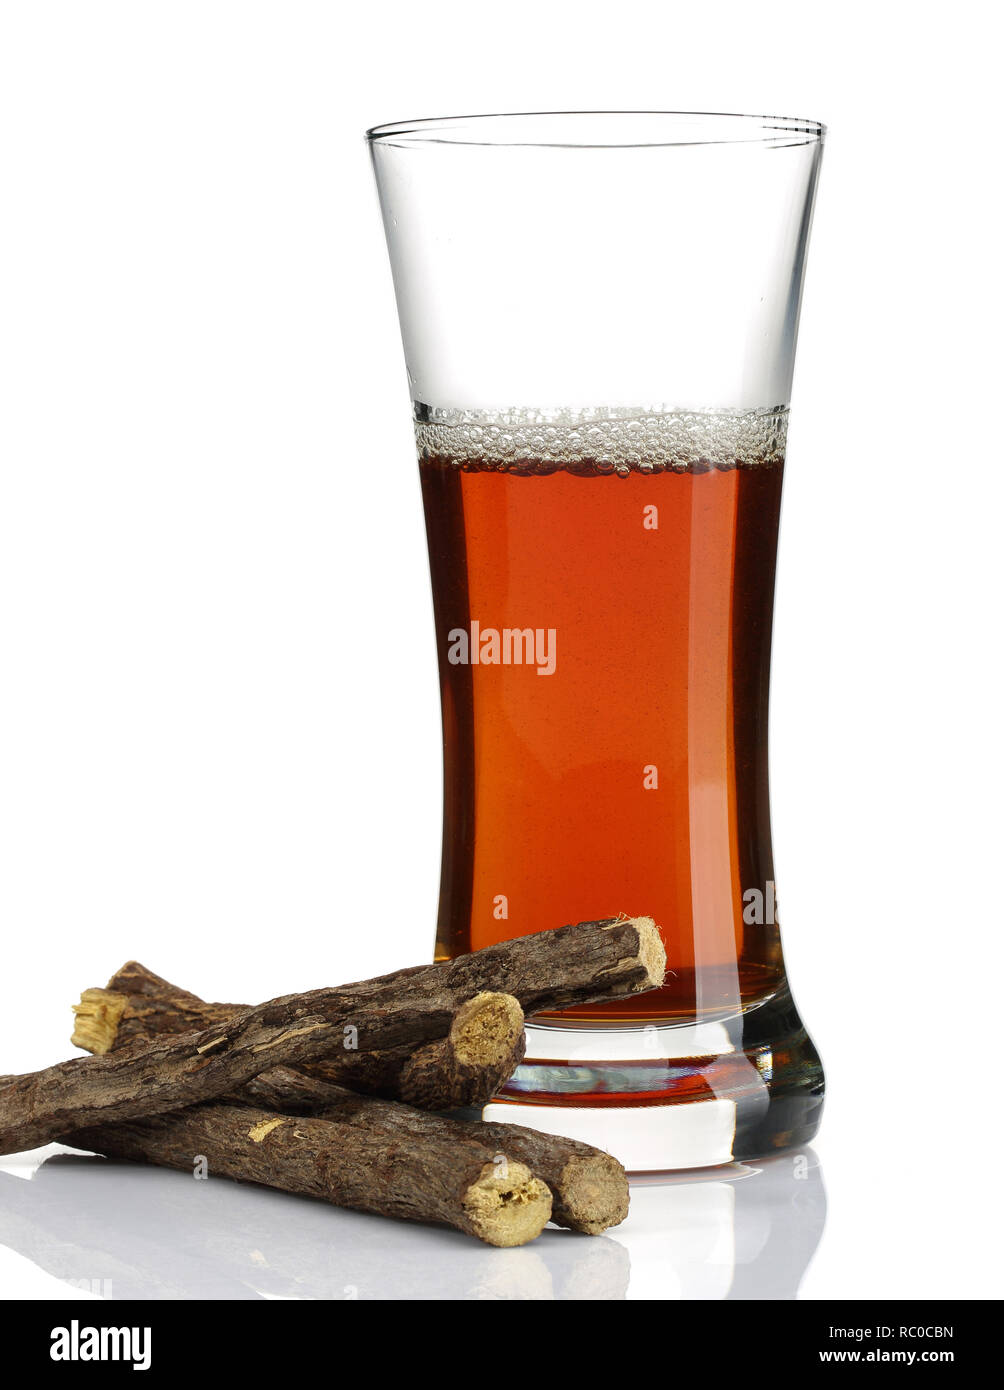 Liquorice root and a glass of tea isolated on white background - Stock Image